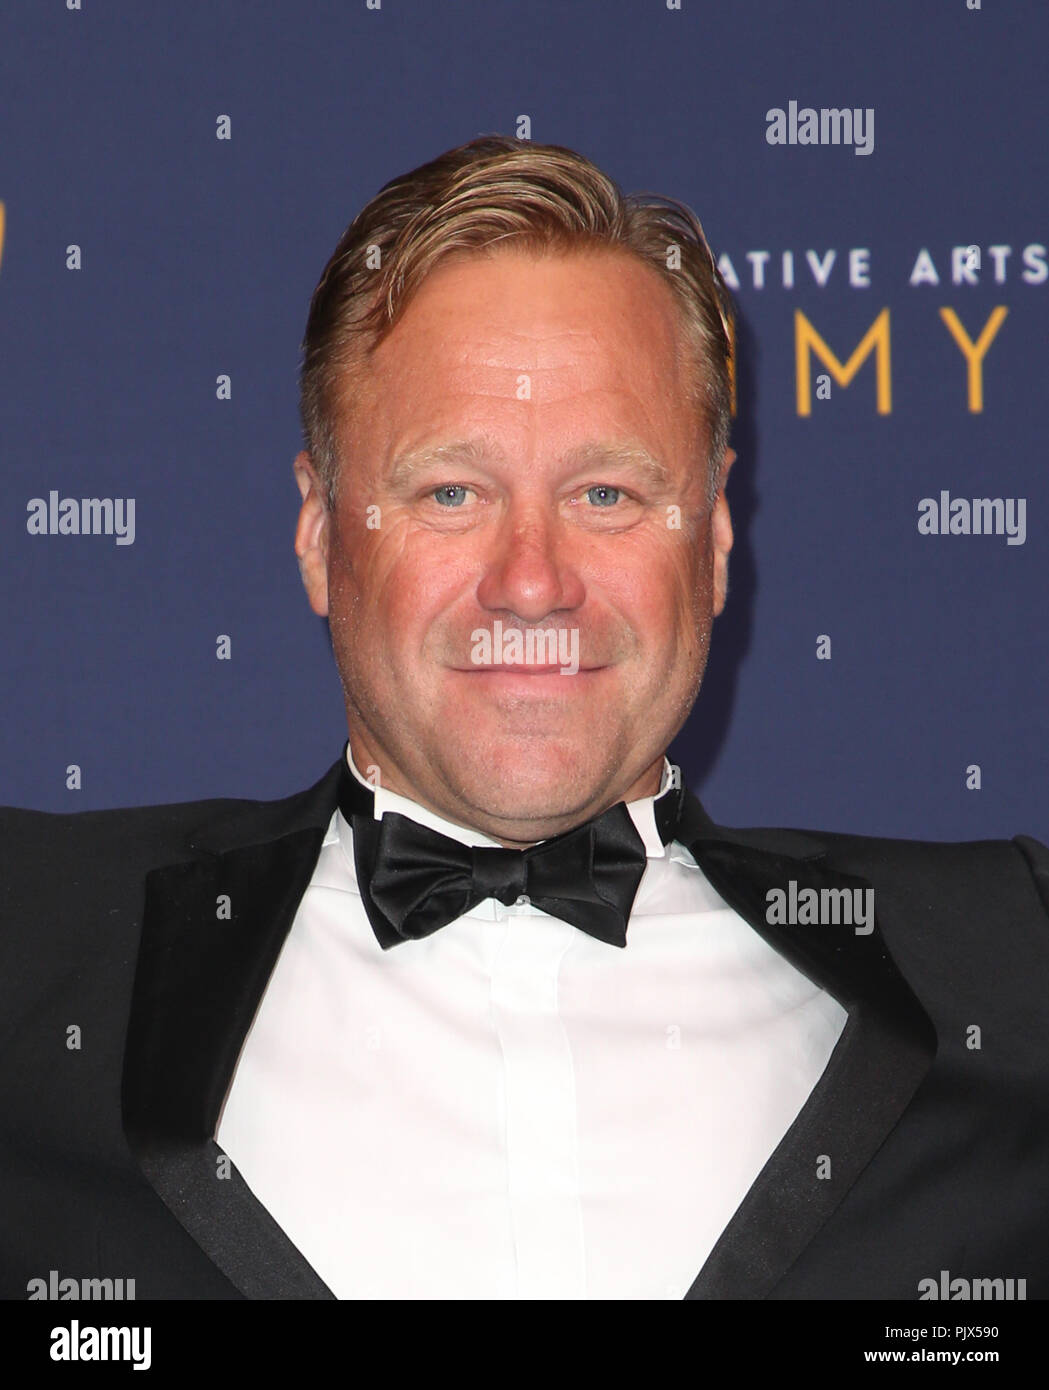 Los Angeles, Ca, USA. 8th Sep, 2018. Rowley Irlam, at the 2018 Creative Arts Emmy Awards-Press Room at the Microsoft Theater L.A. LIVE in Los Angeles, California on September 8, 2018. Credit: Faye Sadou/Media Punch/Alamy Live News - Stock Image